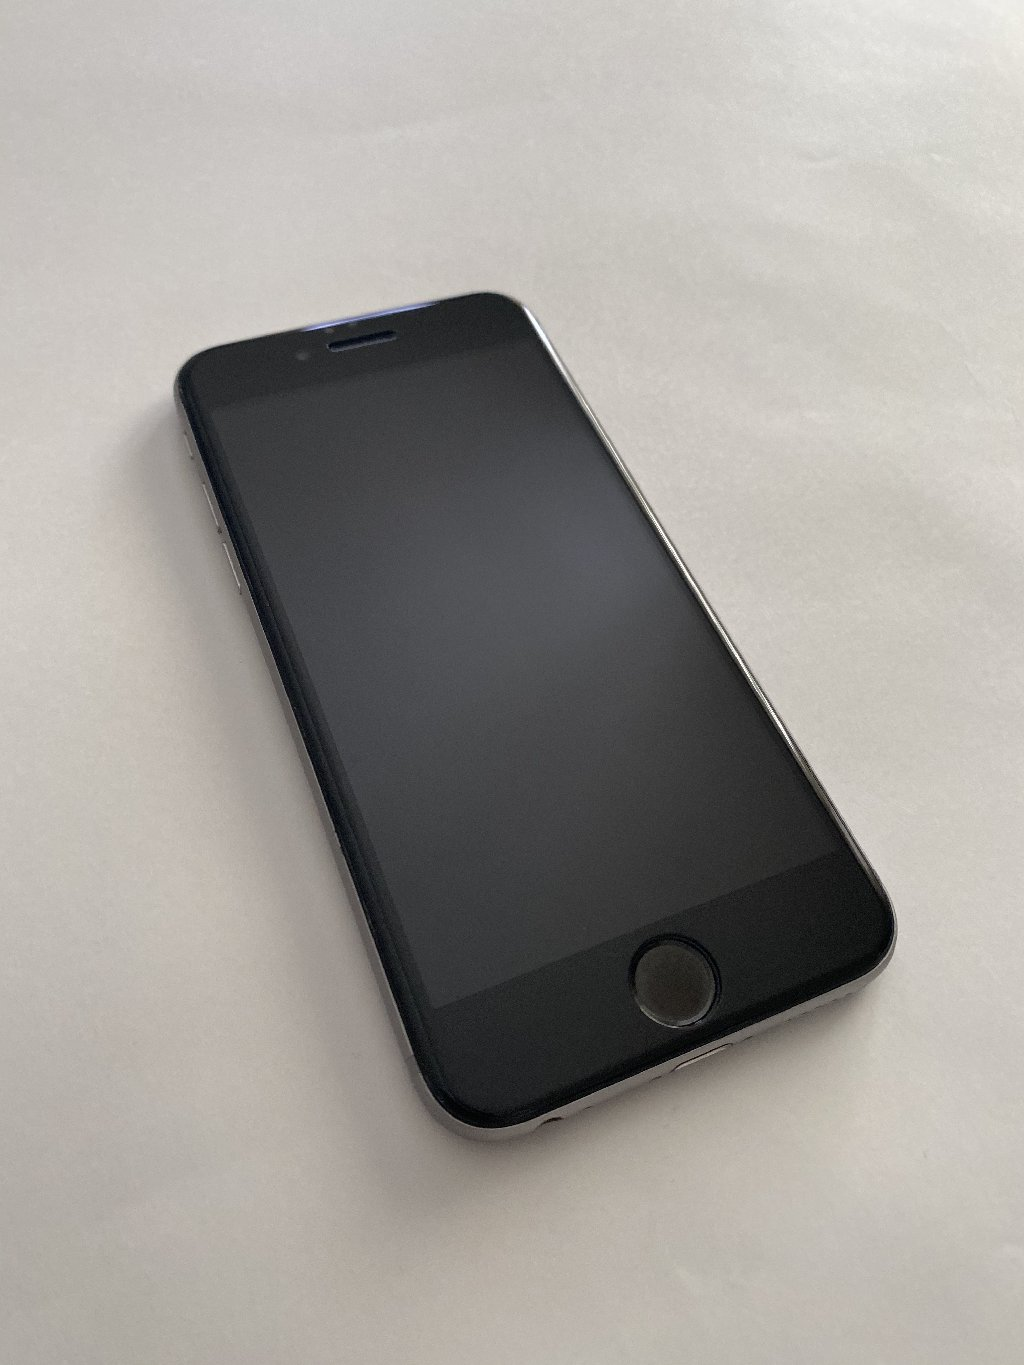 IPhone 6 in excellent condition, minor scratches at the back part